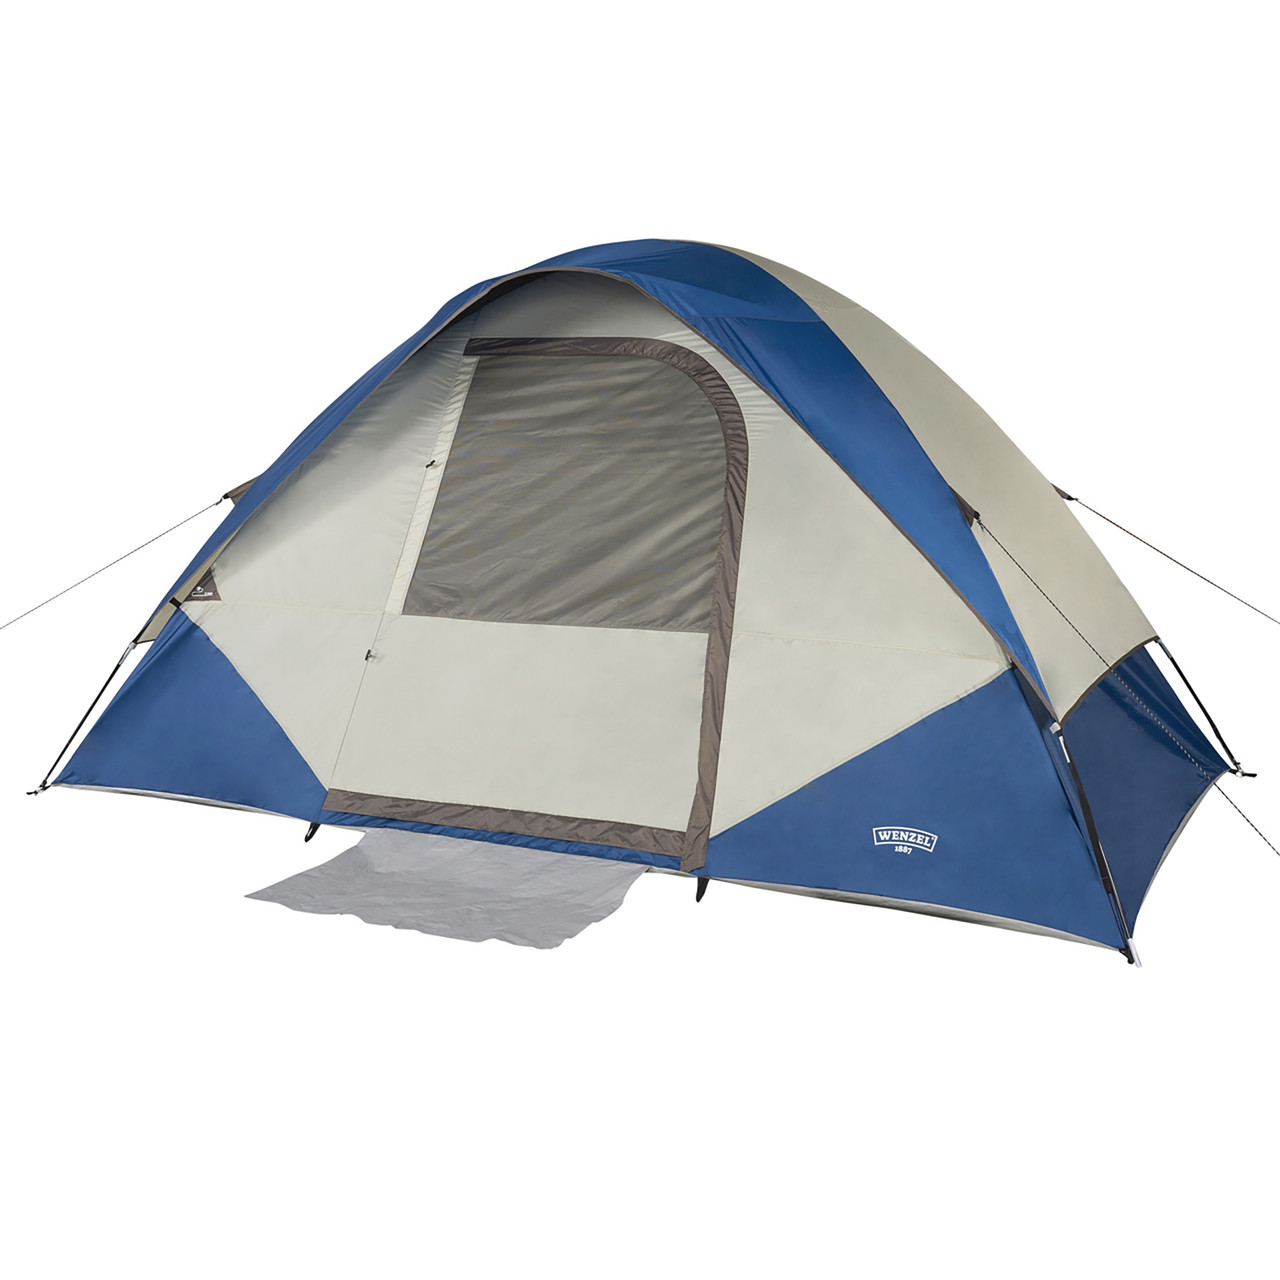 Wenzel Tamarack 6 Person Dome Tent, blue/white, shown with fly attached and front window closed